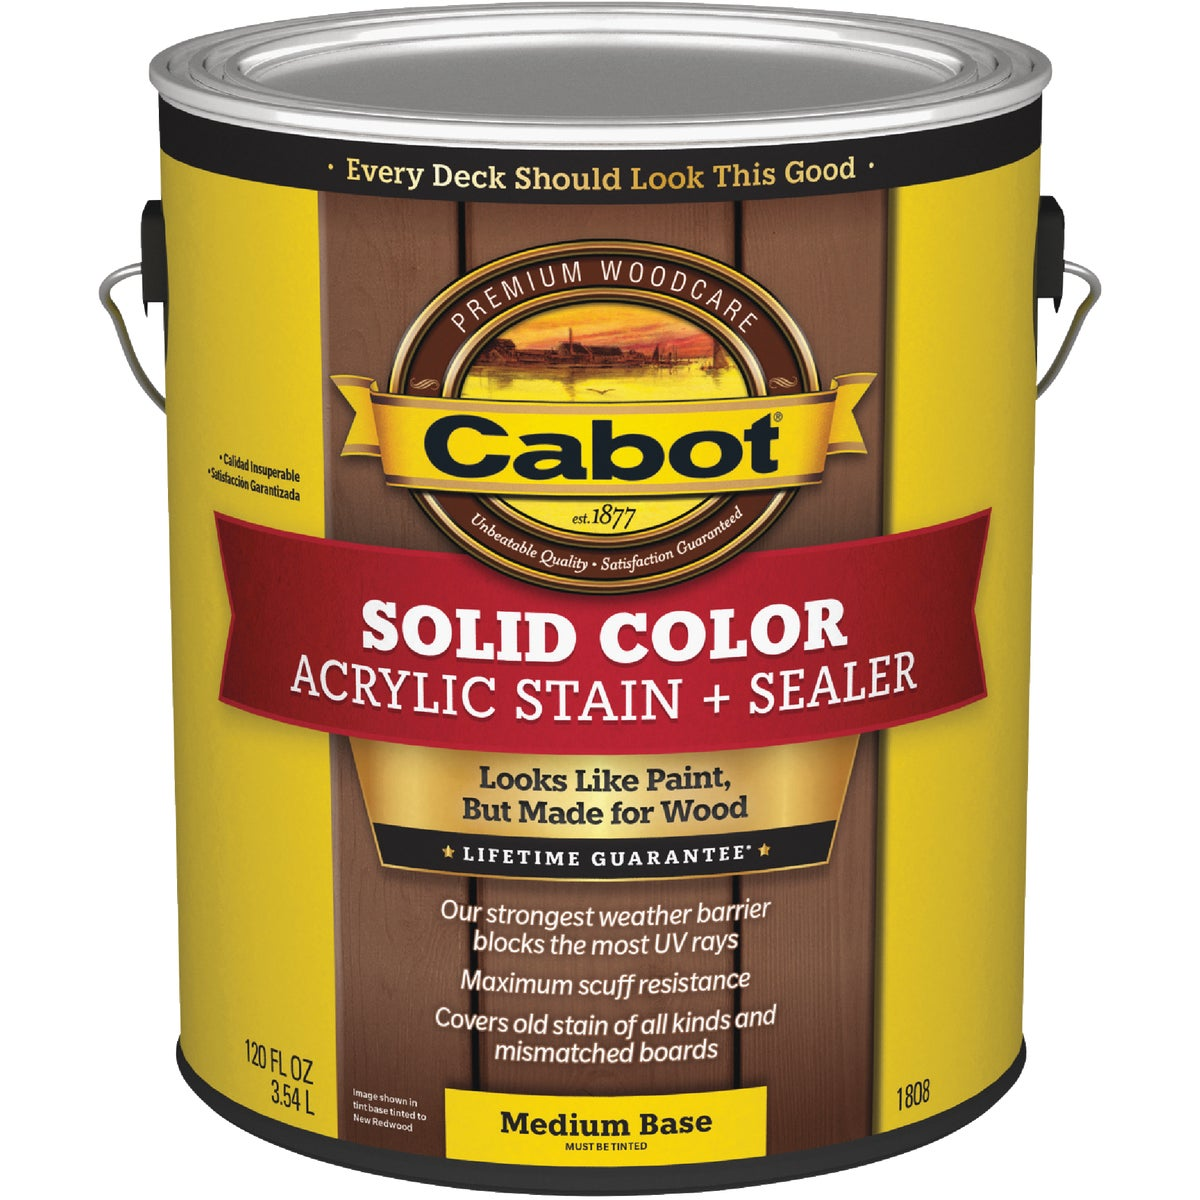 MED BS SOLID DECK STAIN - 140.0001808.007 by Valspar Corp